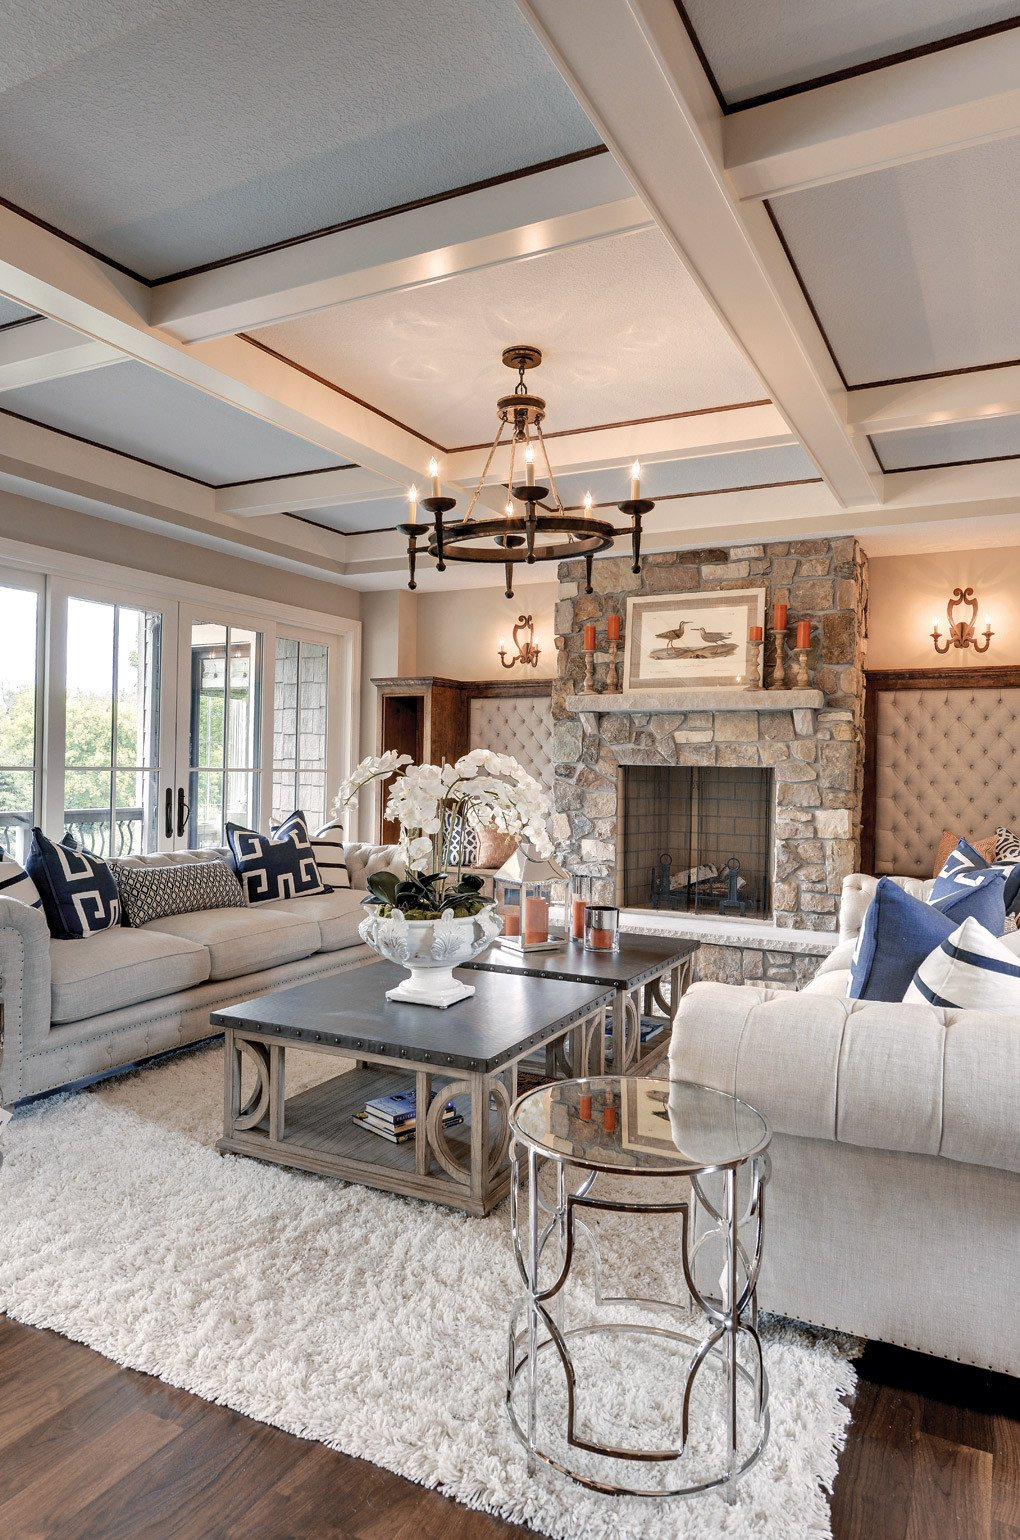 Rustic Chic Decor Living Room Fresh 16 Chic Details for Cozy Rustic Living Room Decor Style